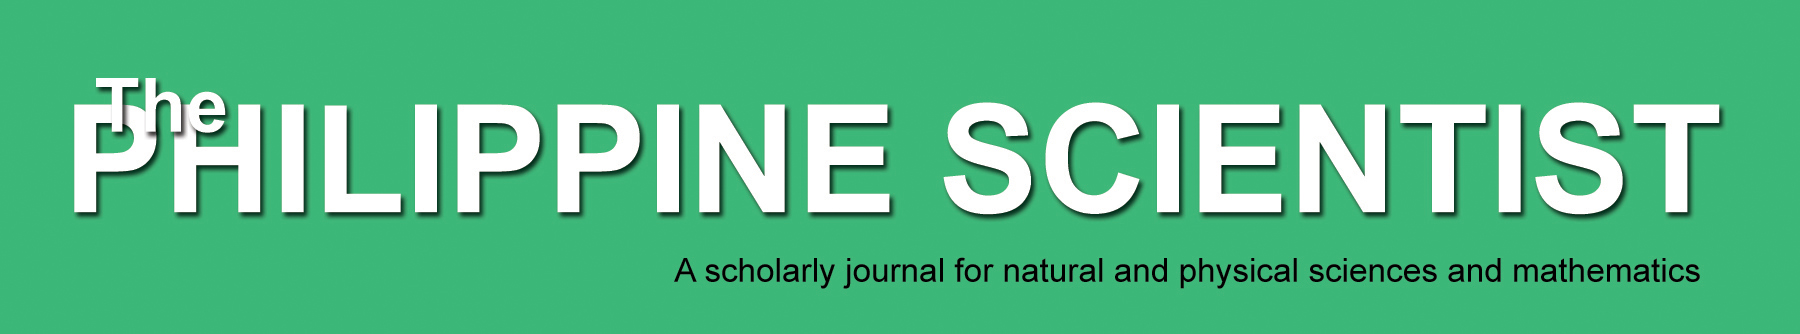 The Philippine Scientist masthead